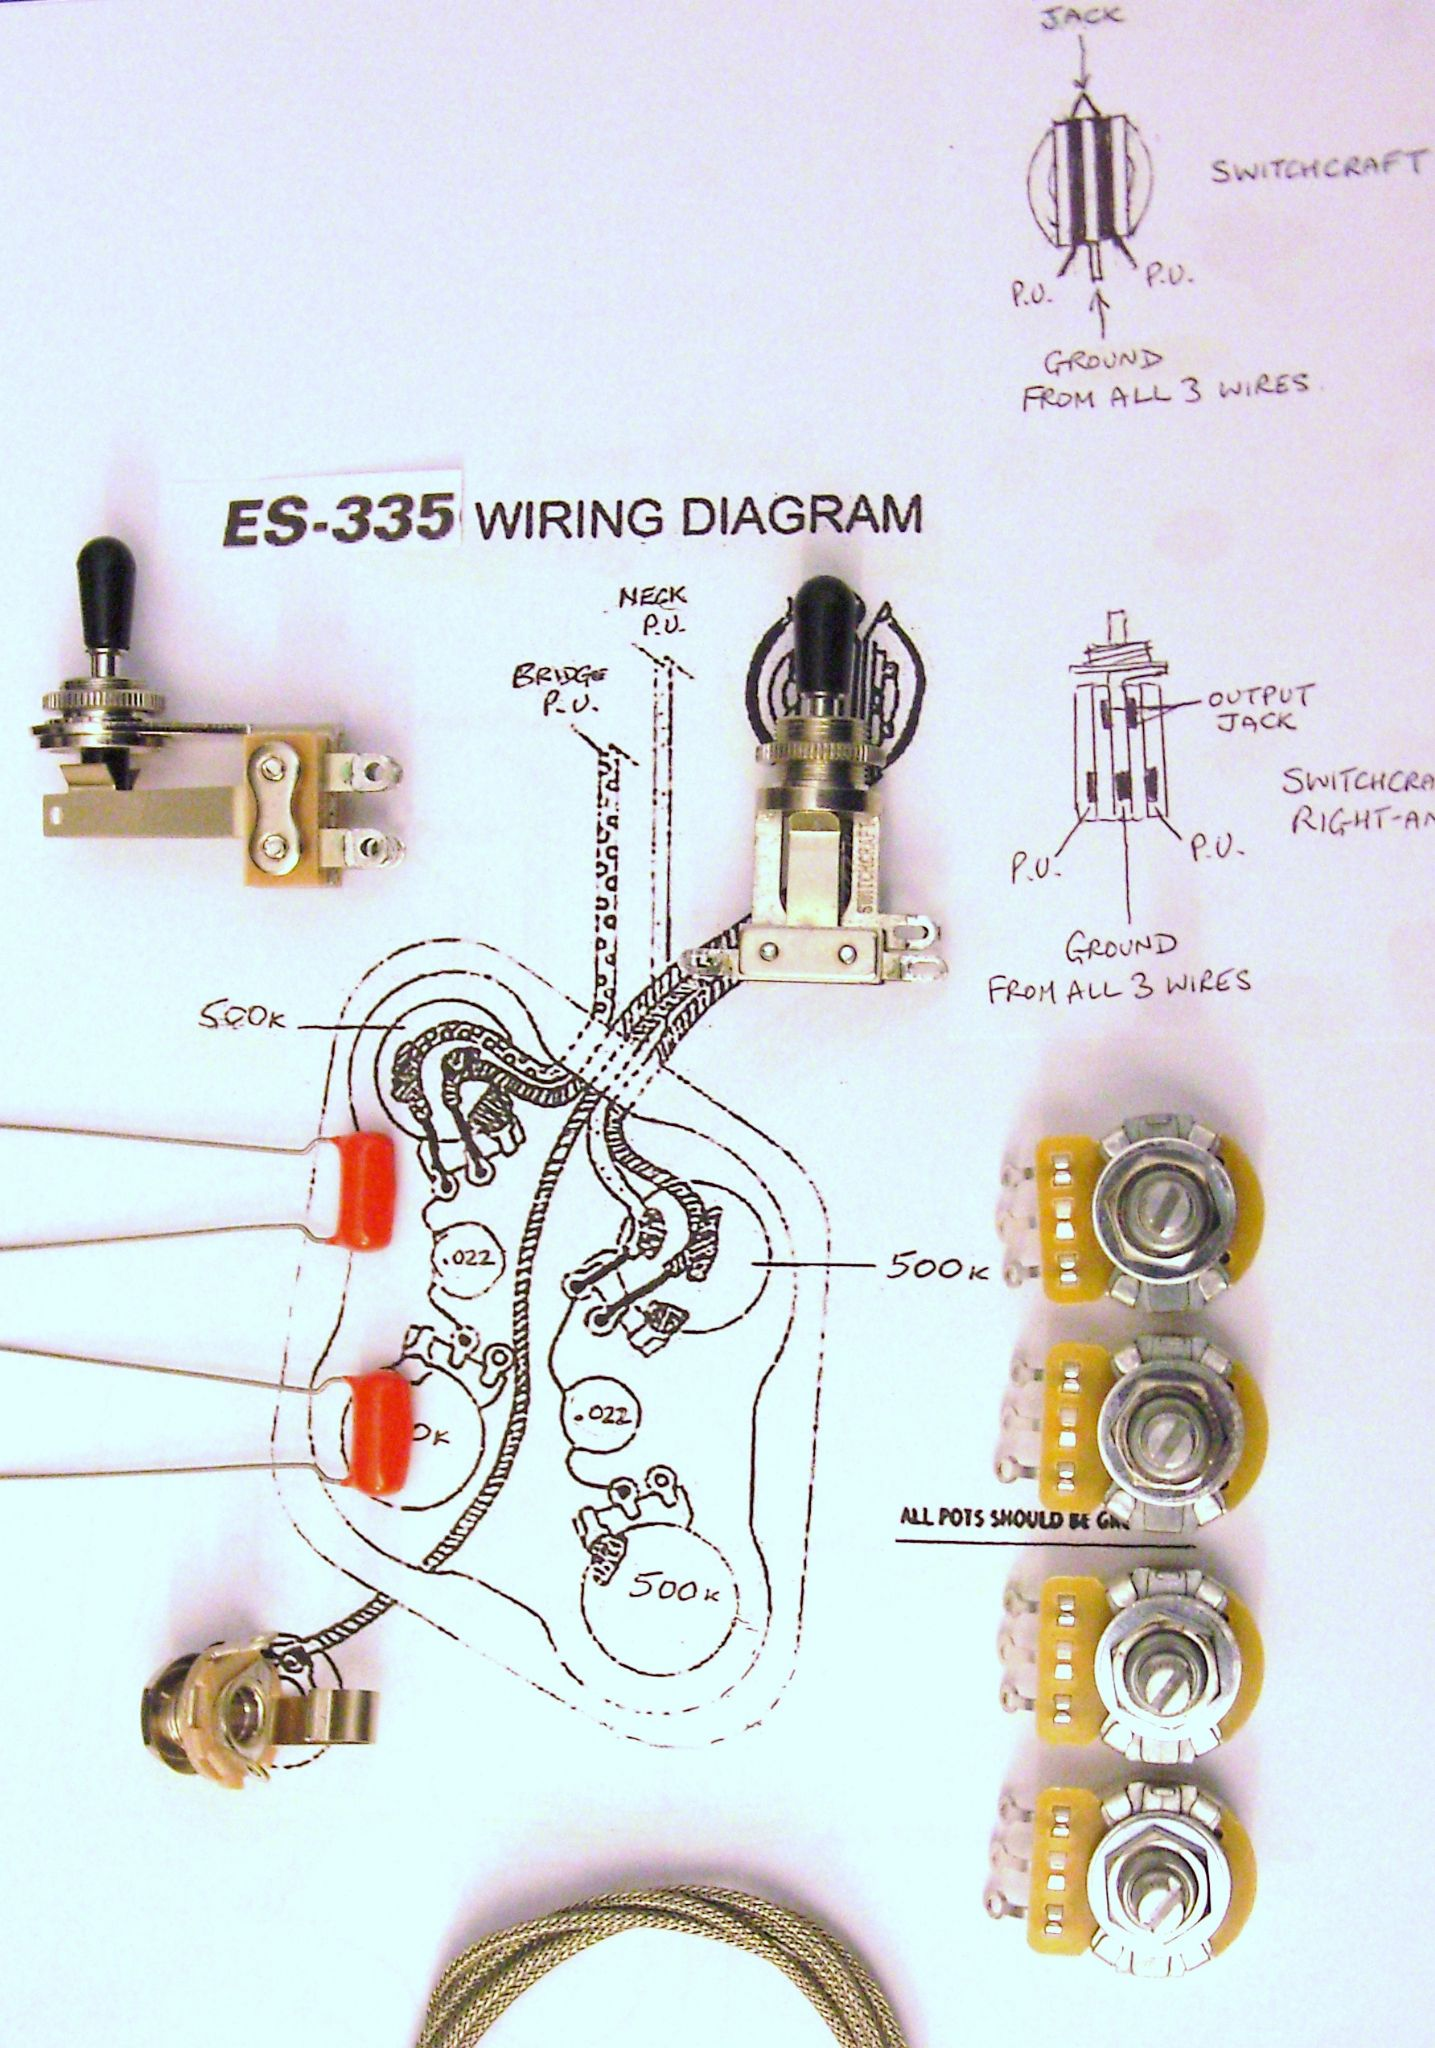 hight resolution of wiring kit for 335 with right angle switchcraft toggle switch is this toggle switch wiring correctswitchwiringjpg